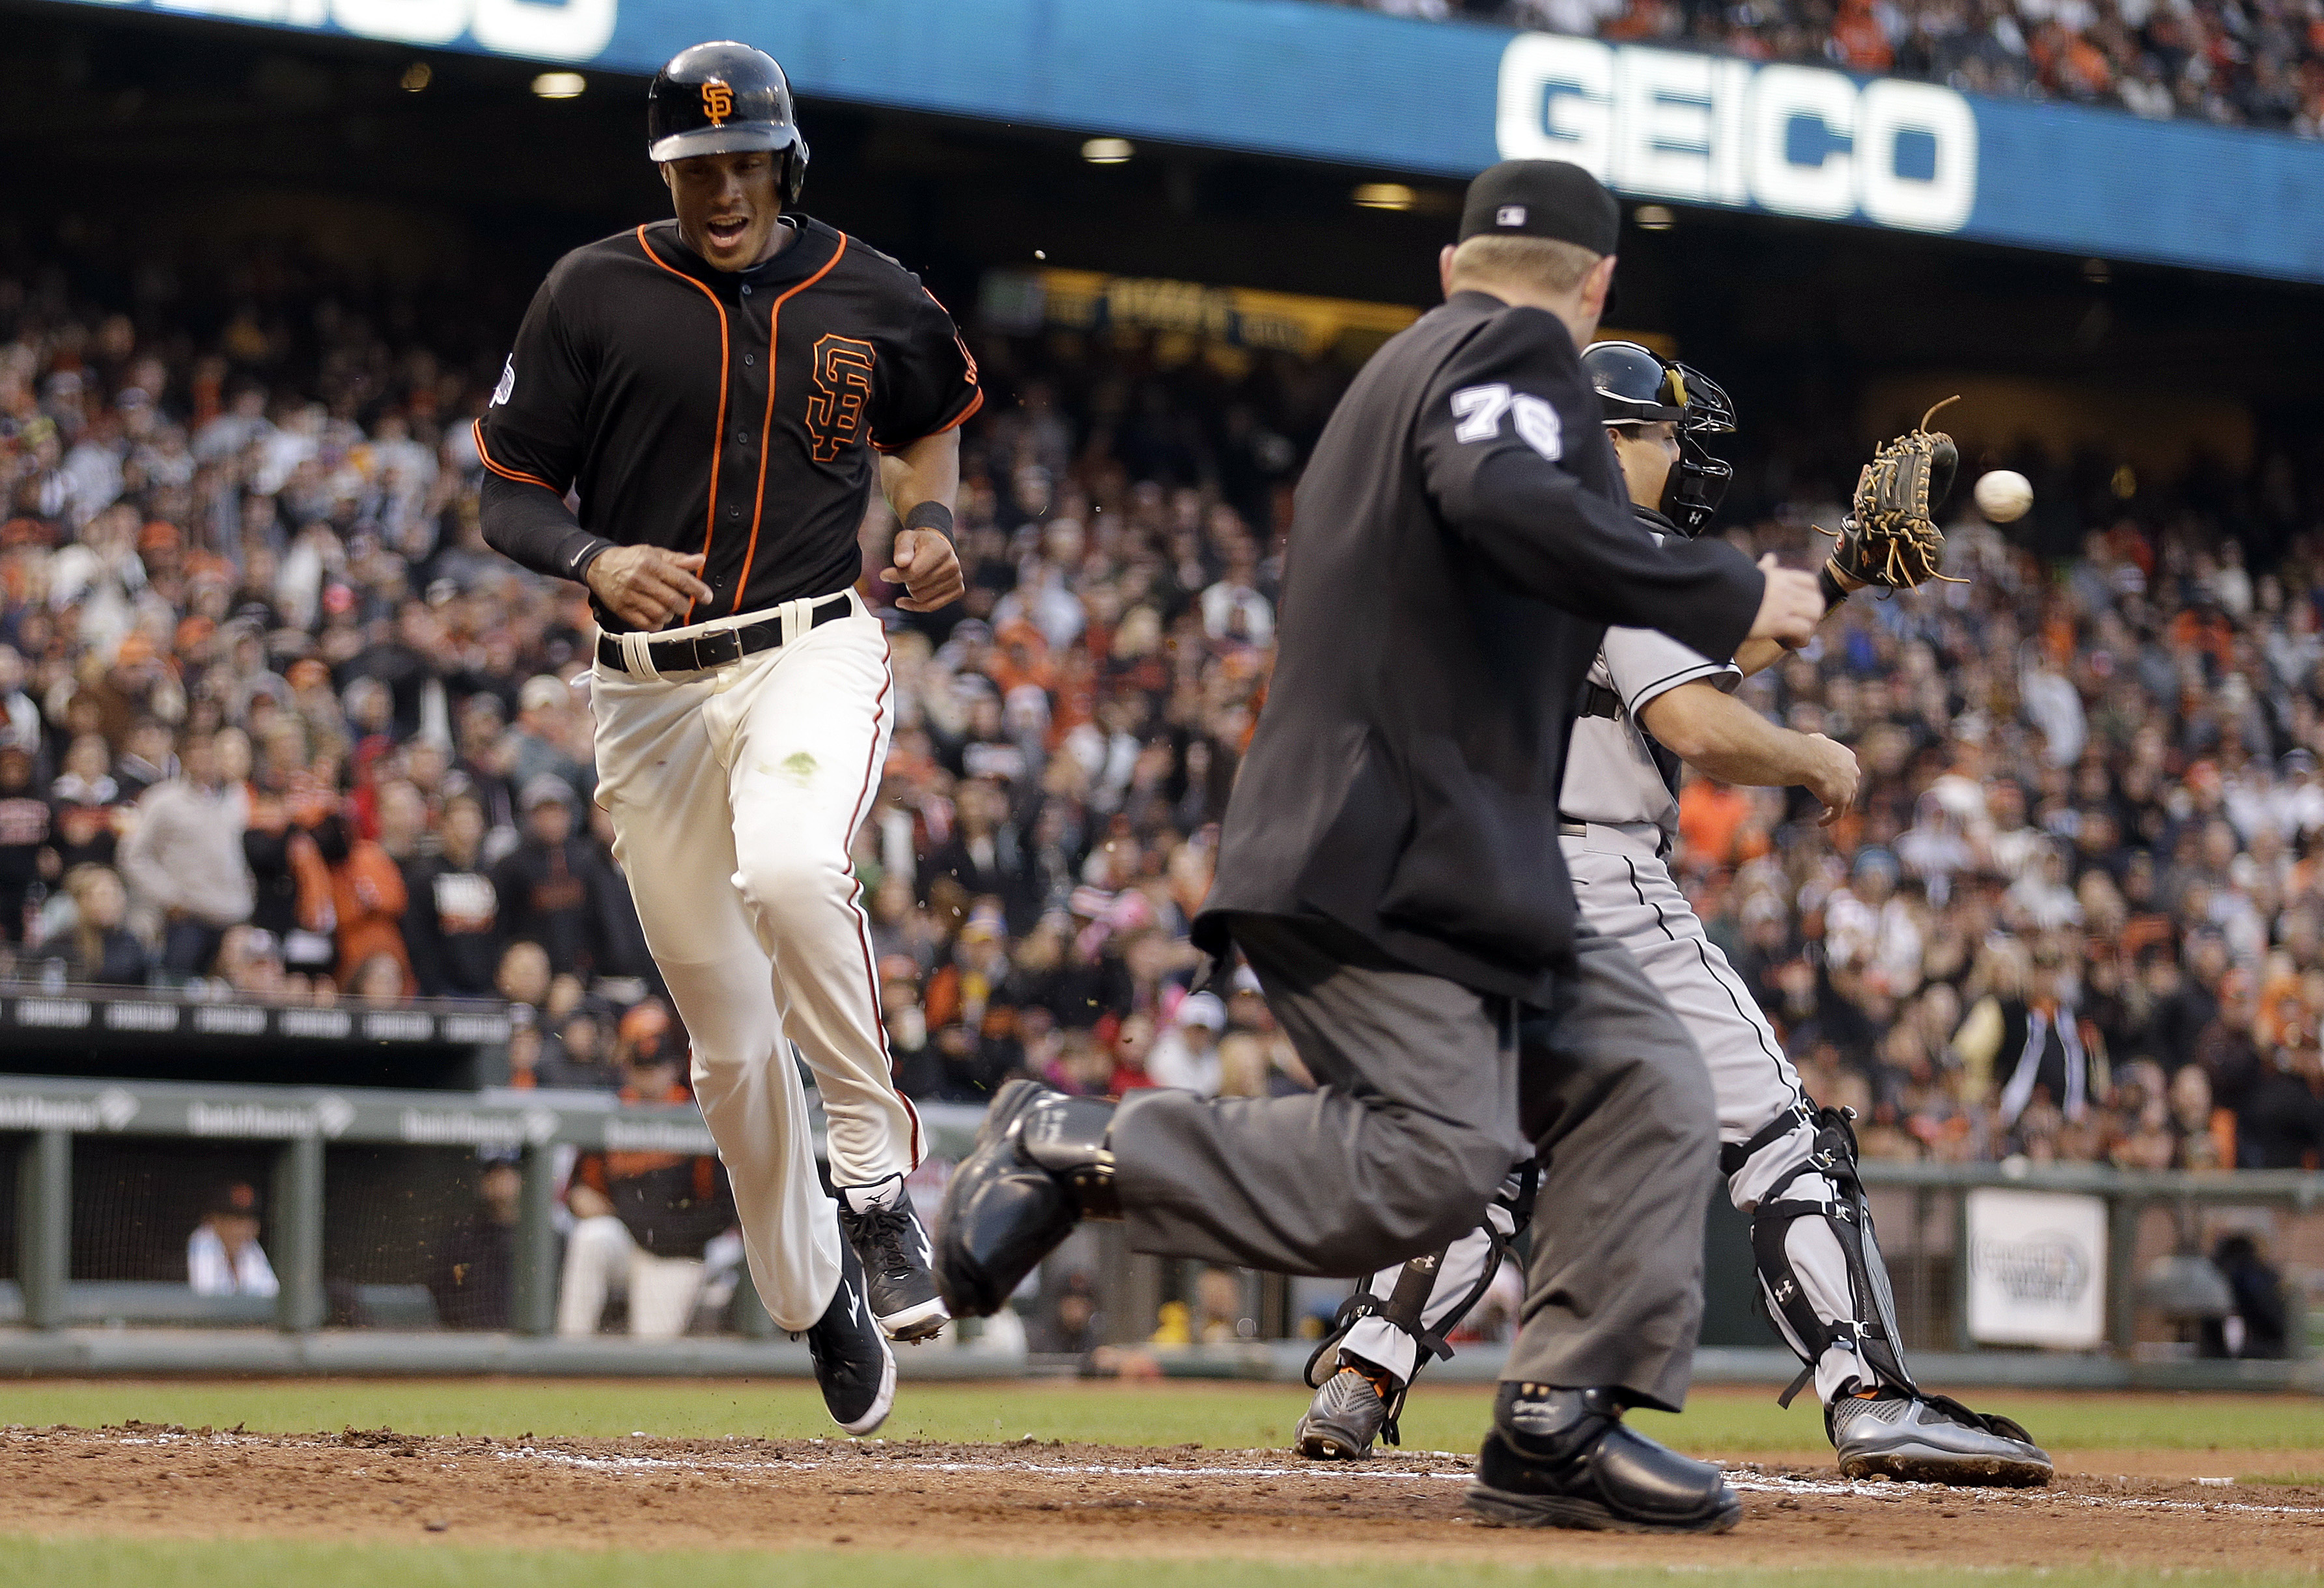 San Francisco Giants' Justin Maxwell, left, scores behind Miami Marlins catcher J.T. Realmuto, back right, in the fifth inning of a baseball game Saturday, May 9, 2015, in San Francisco. Maxwell scored on a single by Giants' Brandon Crawford. Home plate u